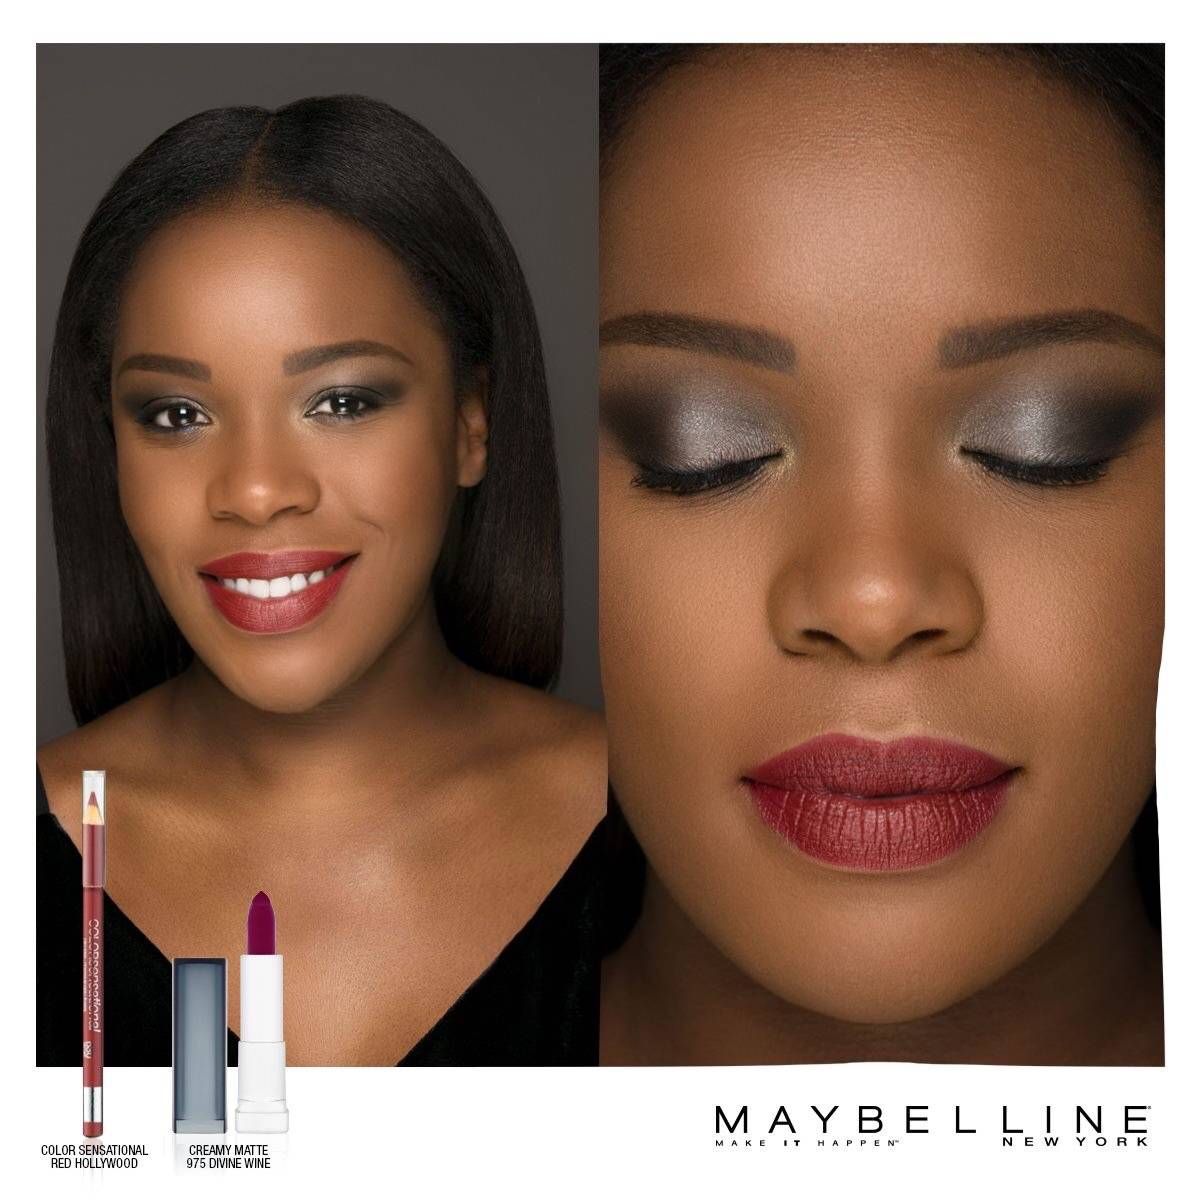 MAKE CHIC HAPPEN x MAYBELLINE NEW YORK